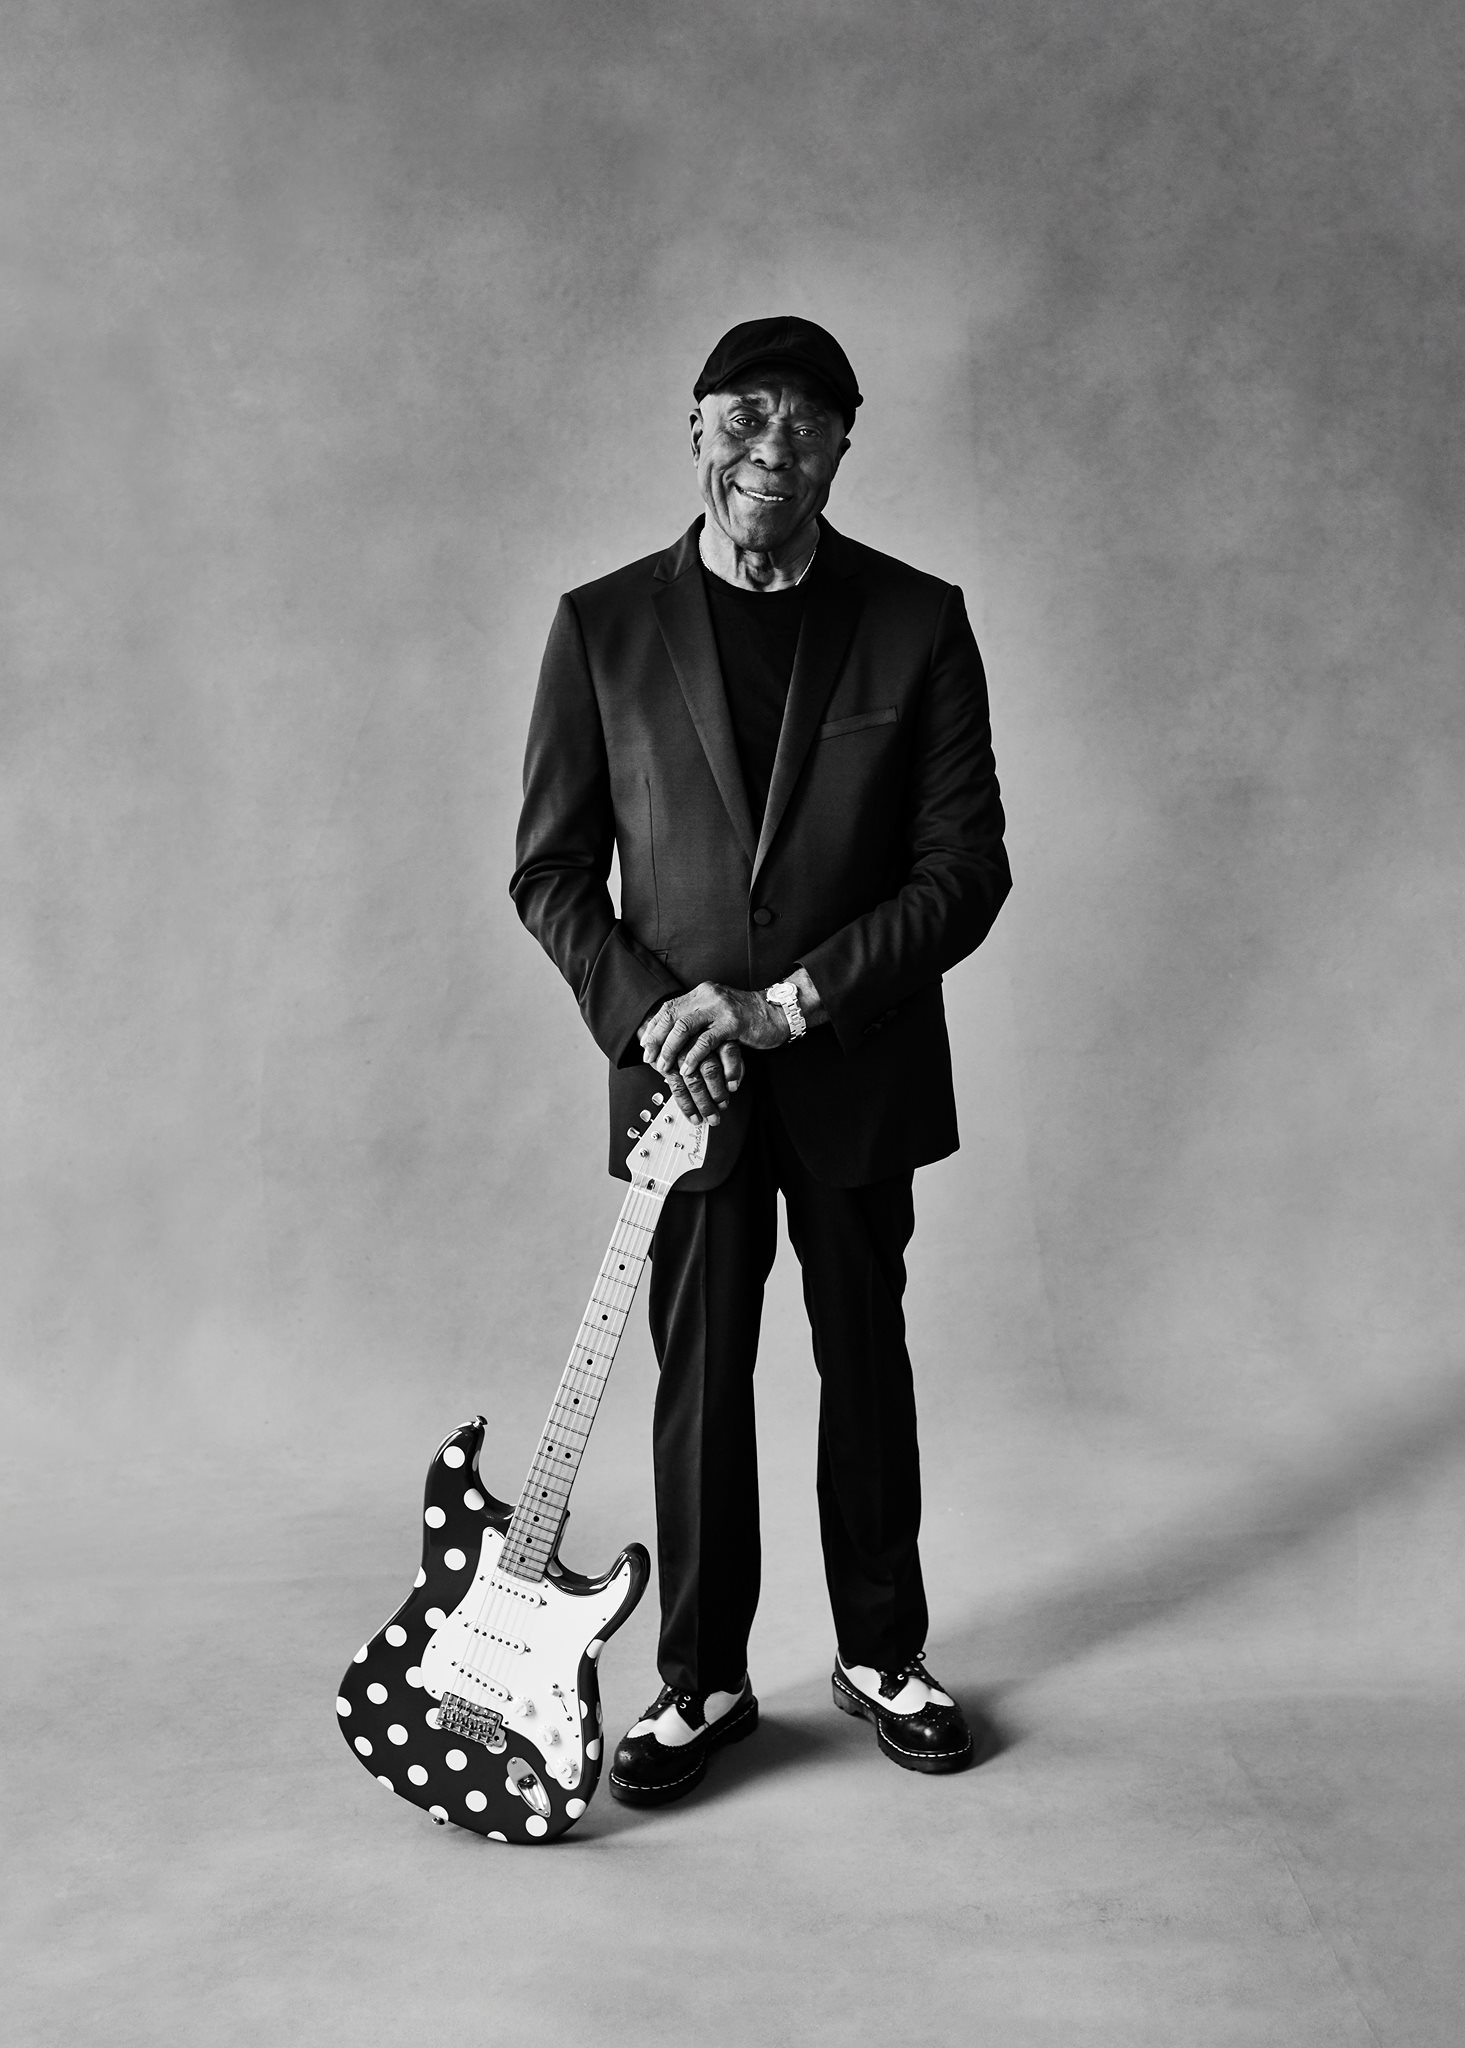 Buddy Guy Music Without Borders